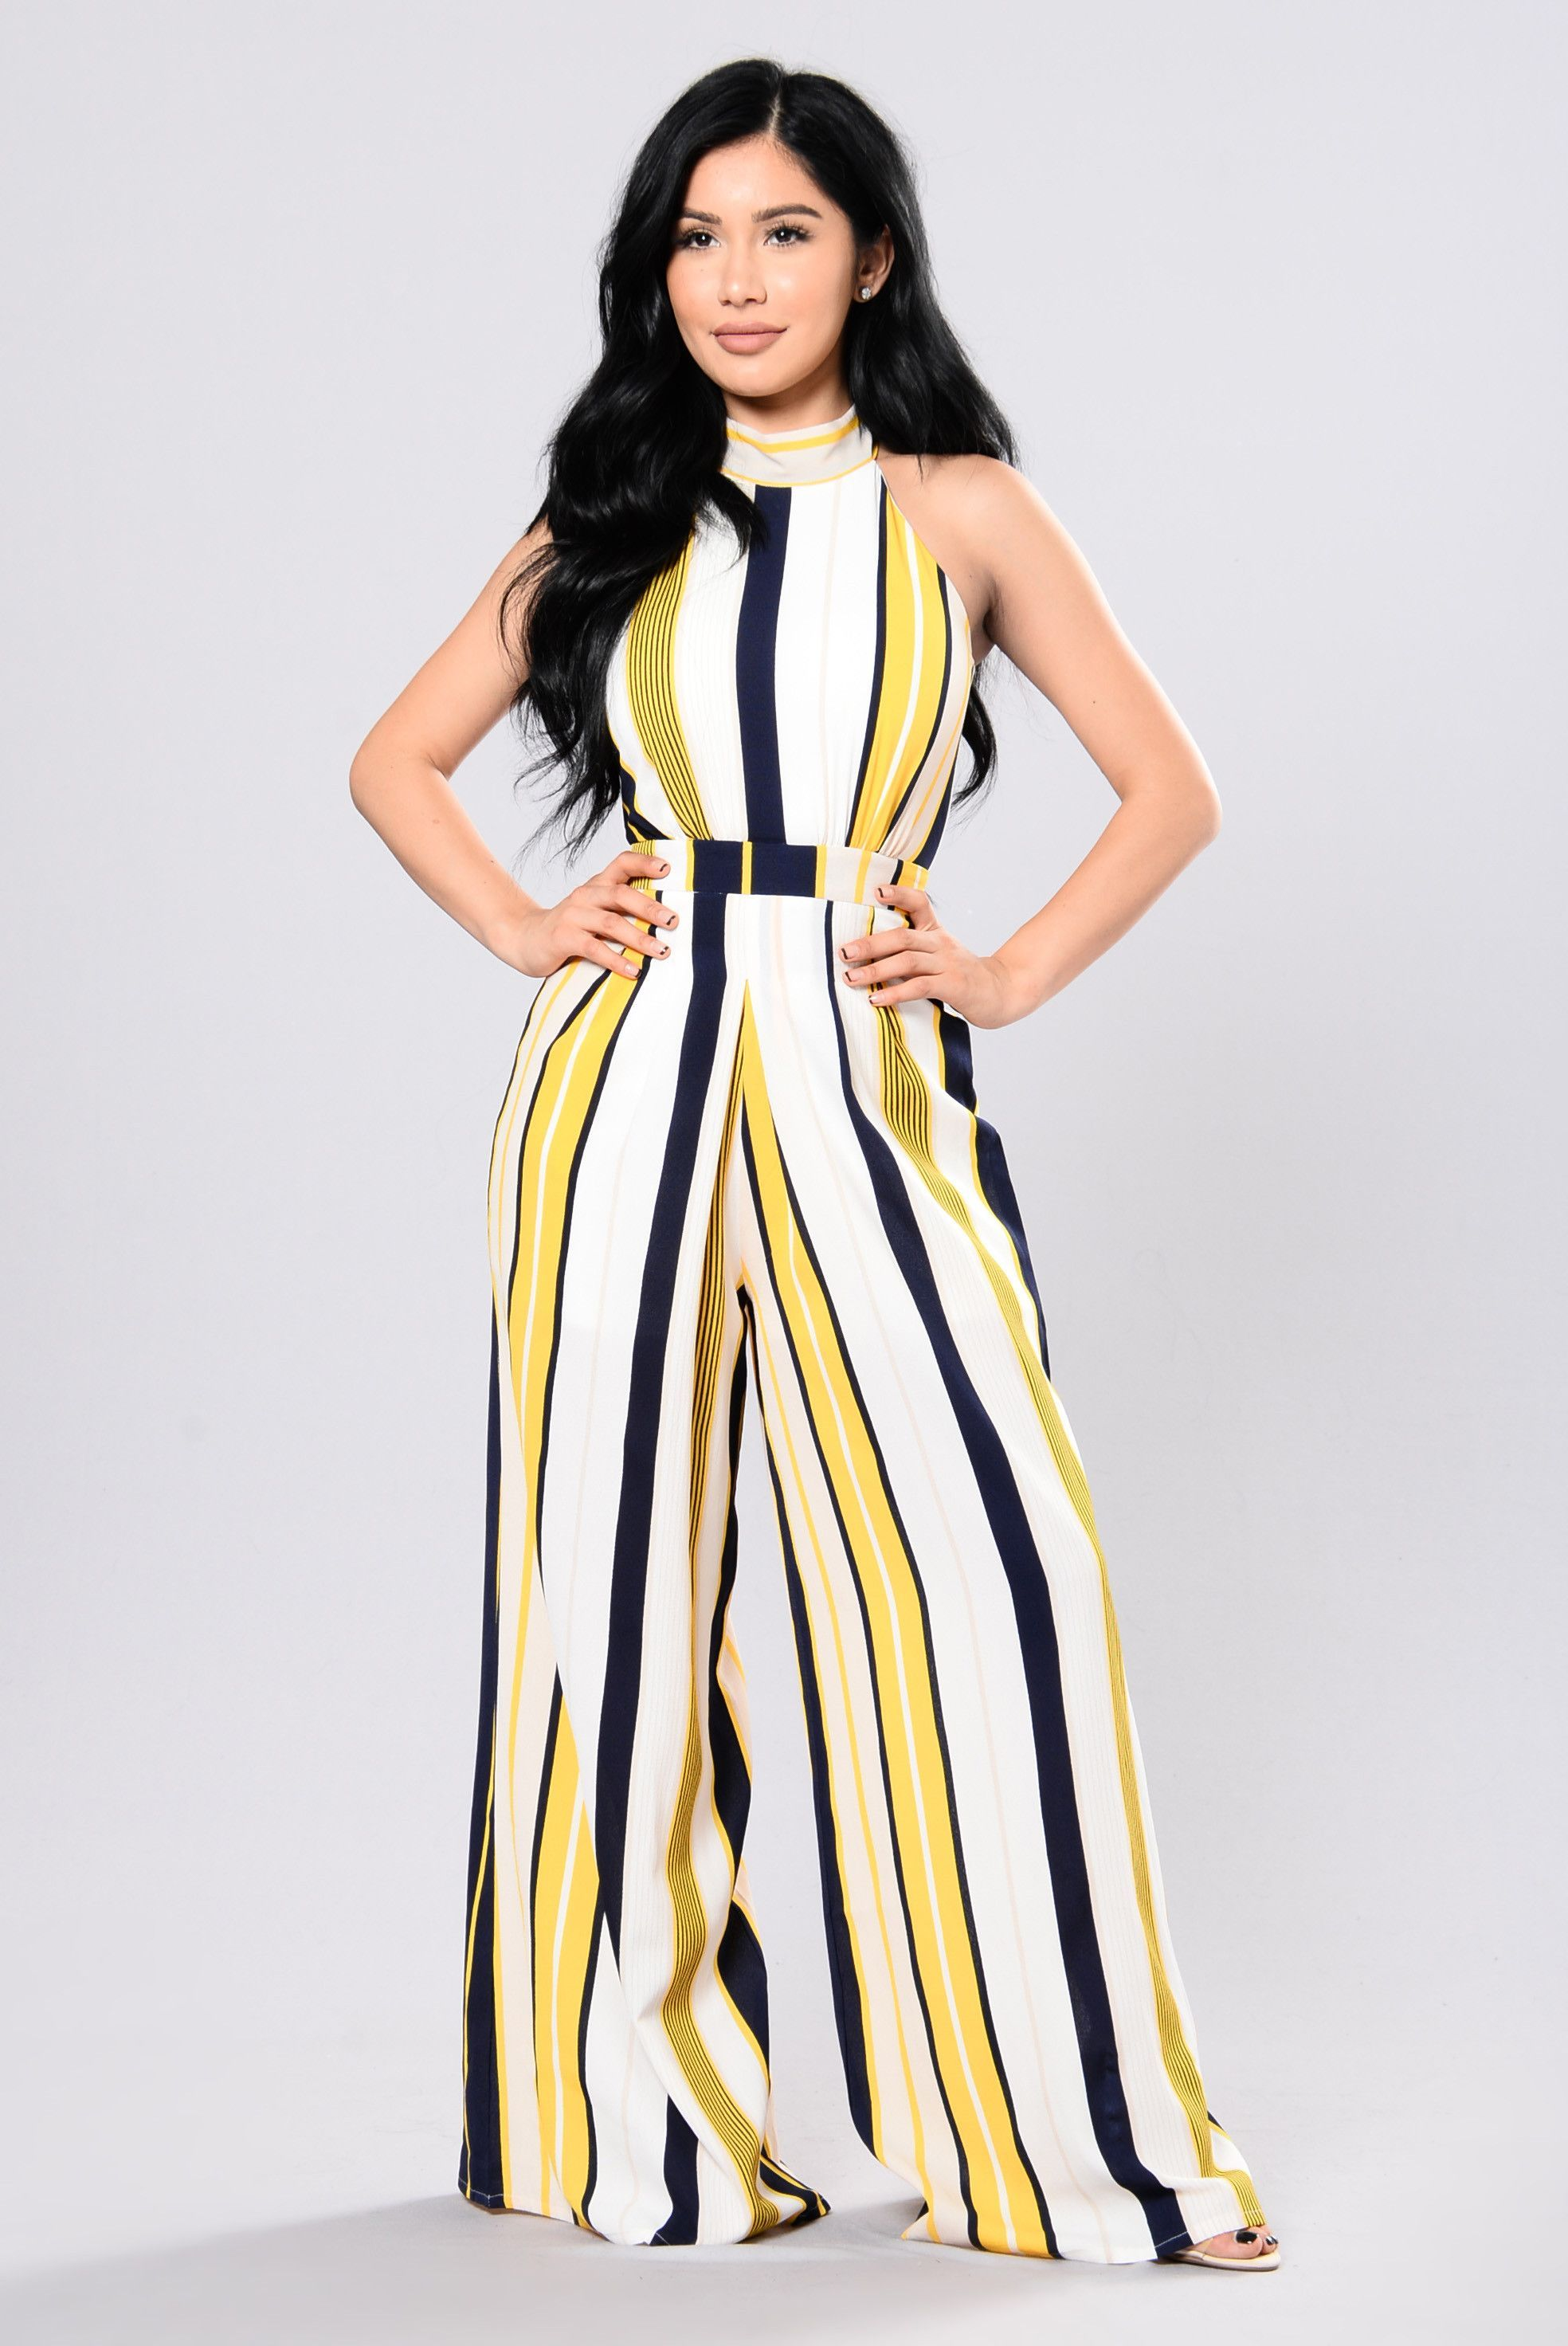 afcf9a2cdd0 Spot Light On Me Jumpsuit - Yellow Navy